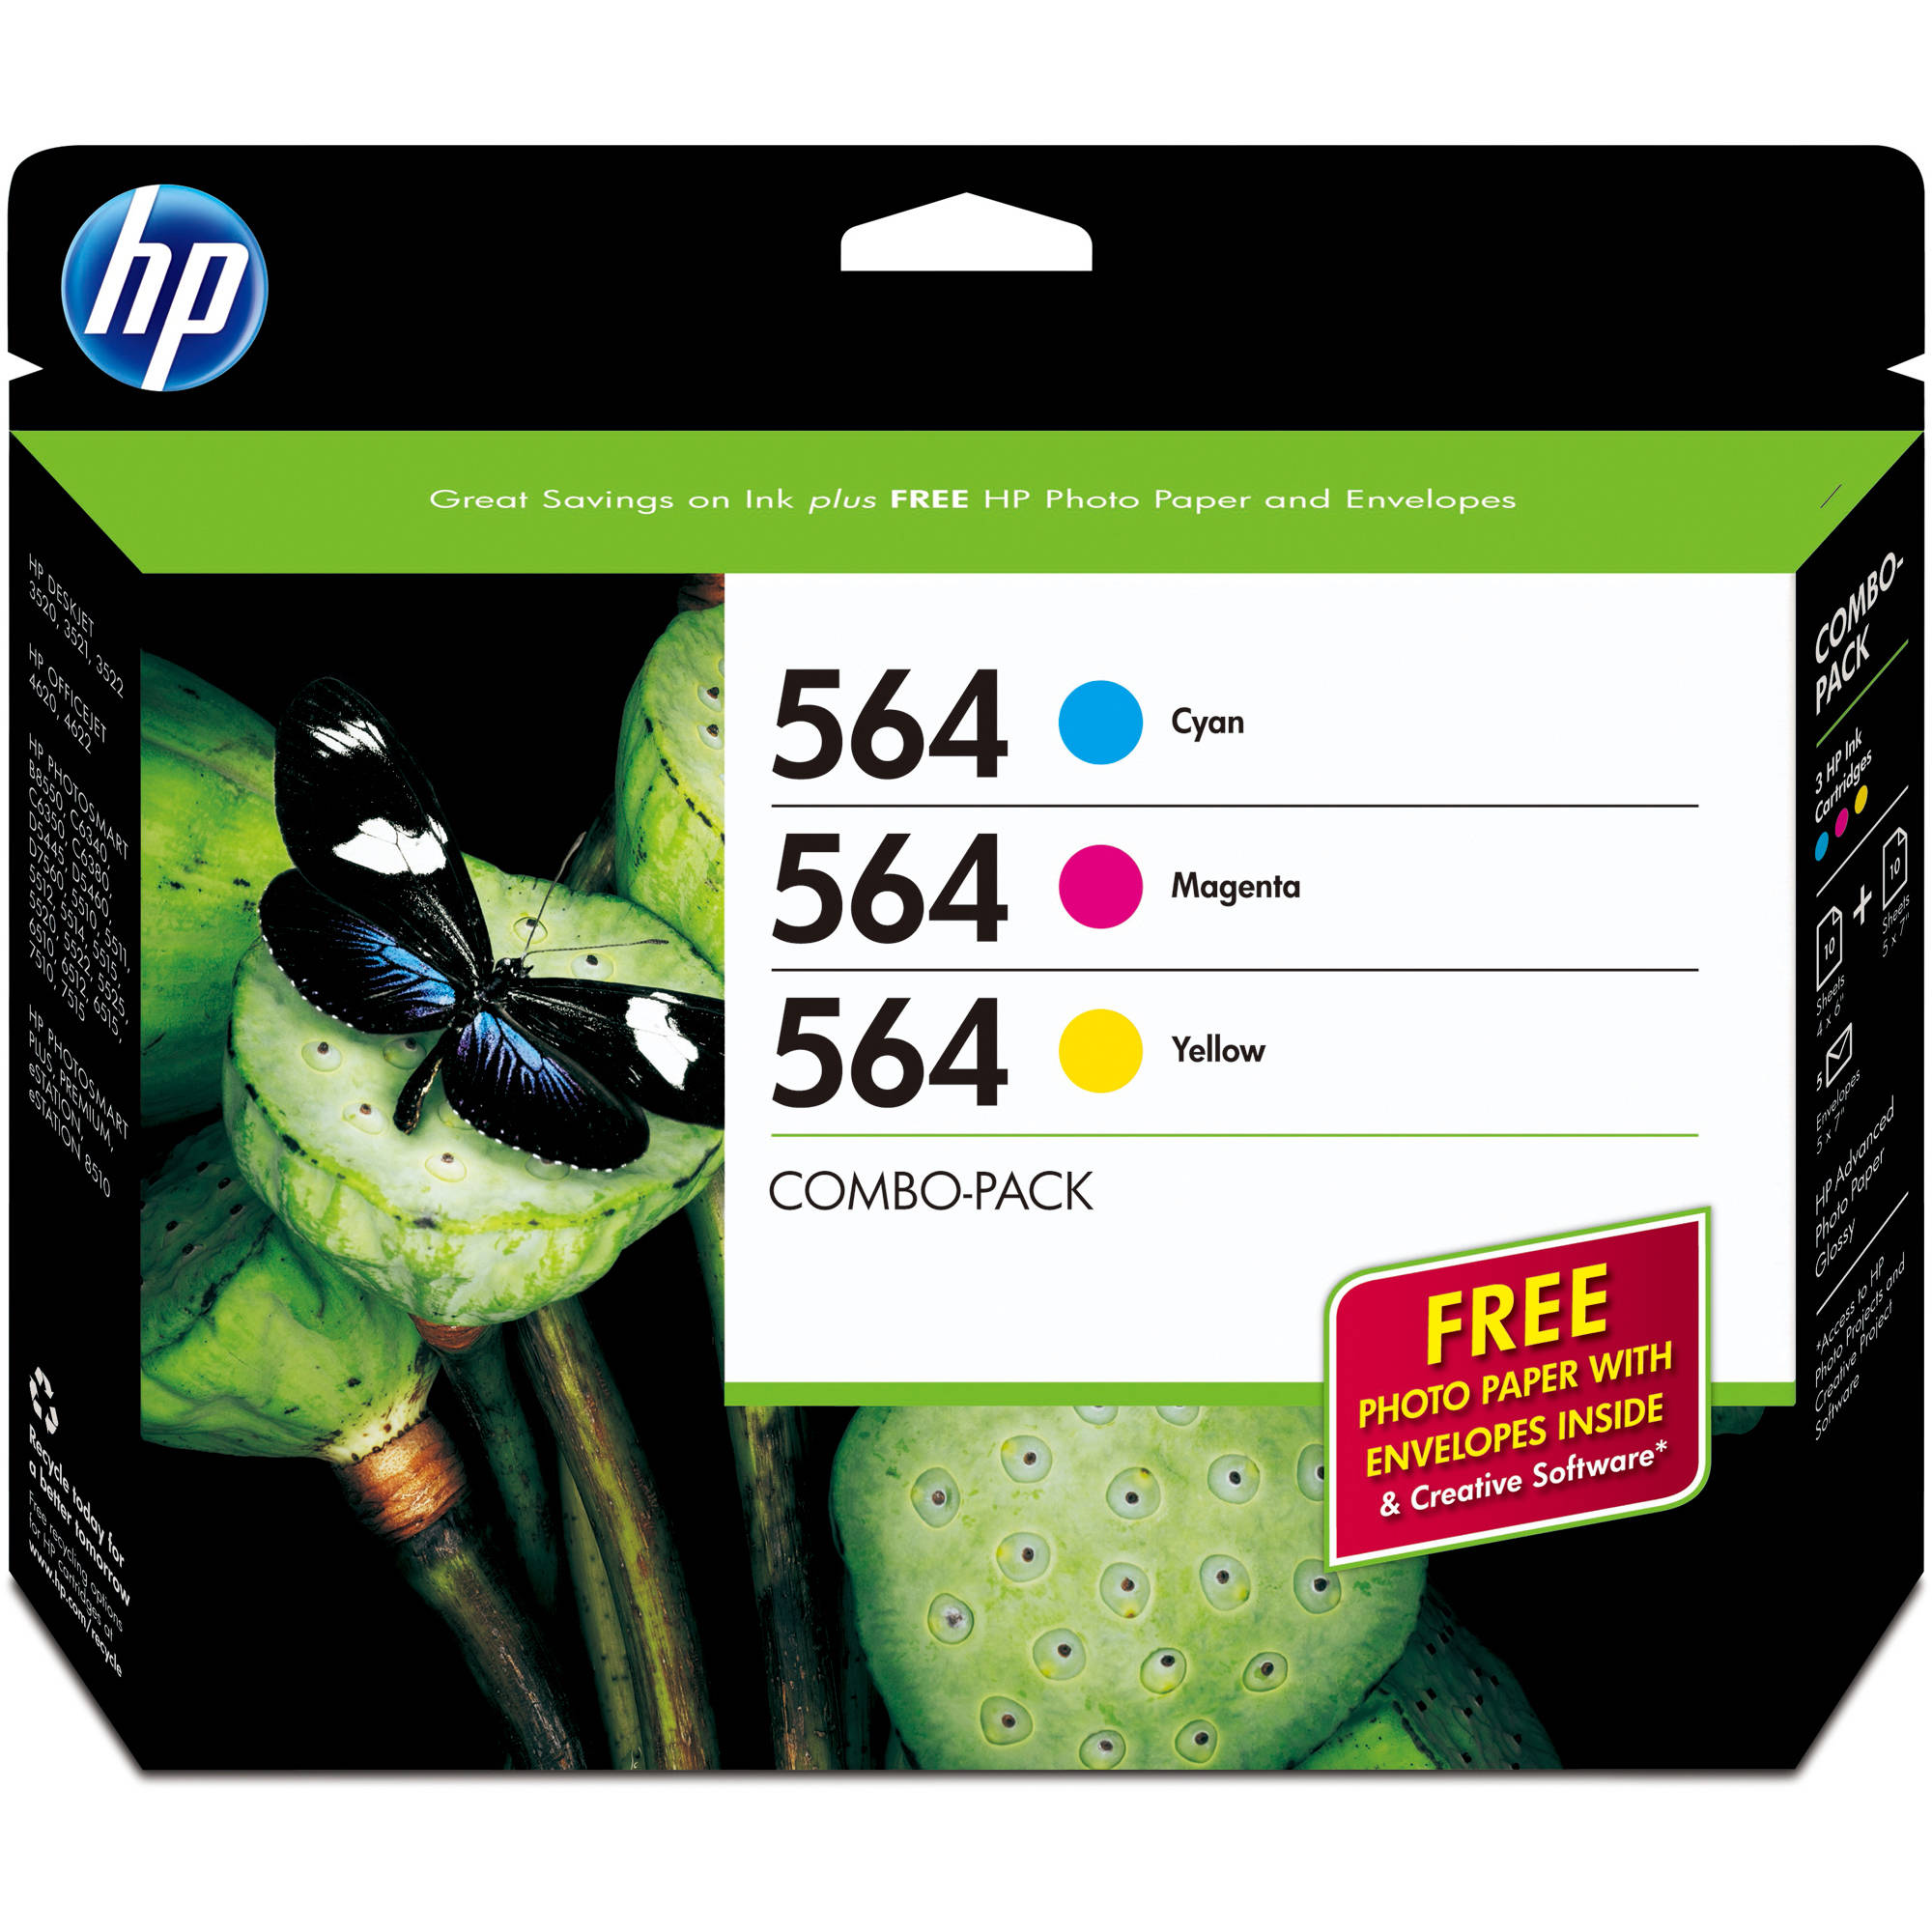 HP 564 Cyan/Magenta/Yellow Original Ink Cartridges w/Photo Paper, 3 pack (B3B33FN)